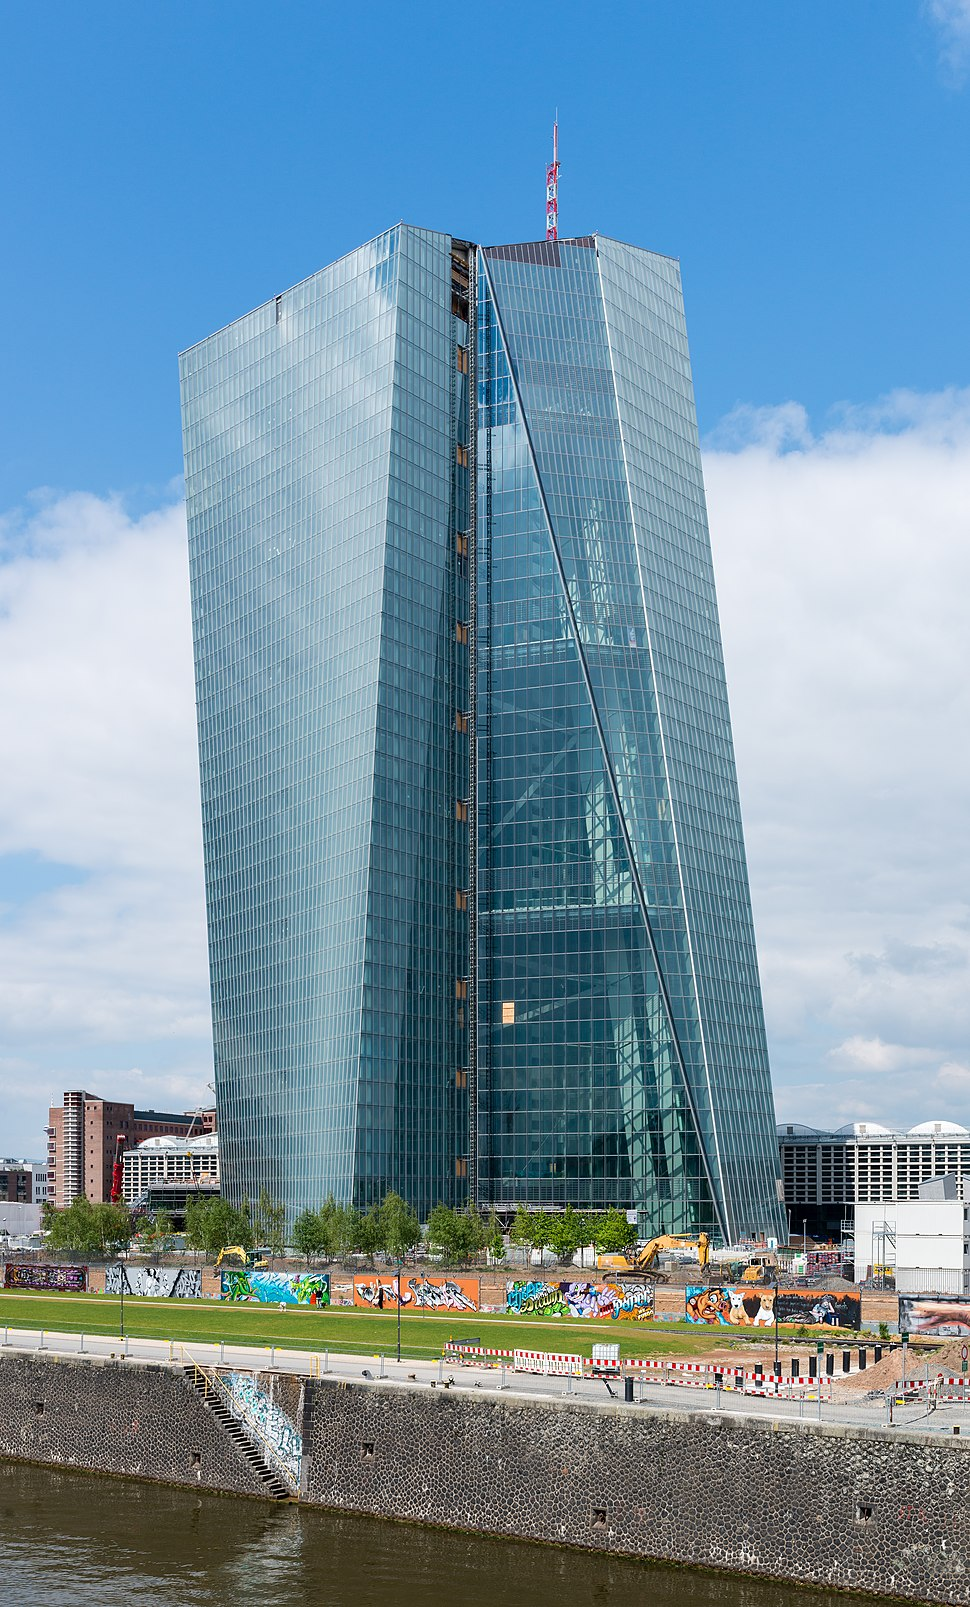 European Central Bank - building under construction - Frankfurt - Germany - 13